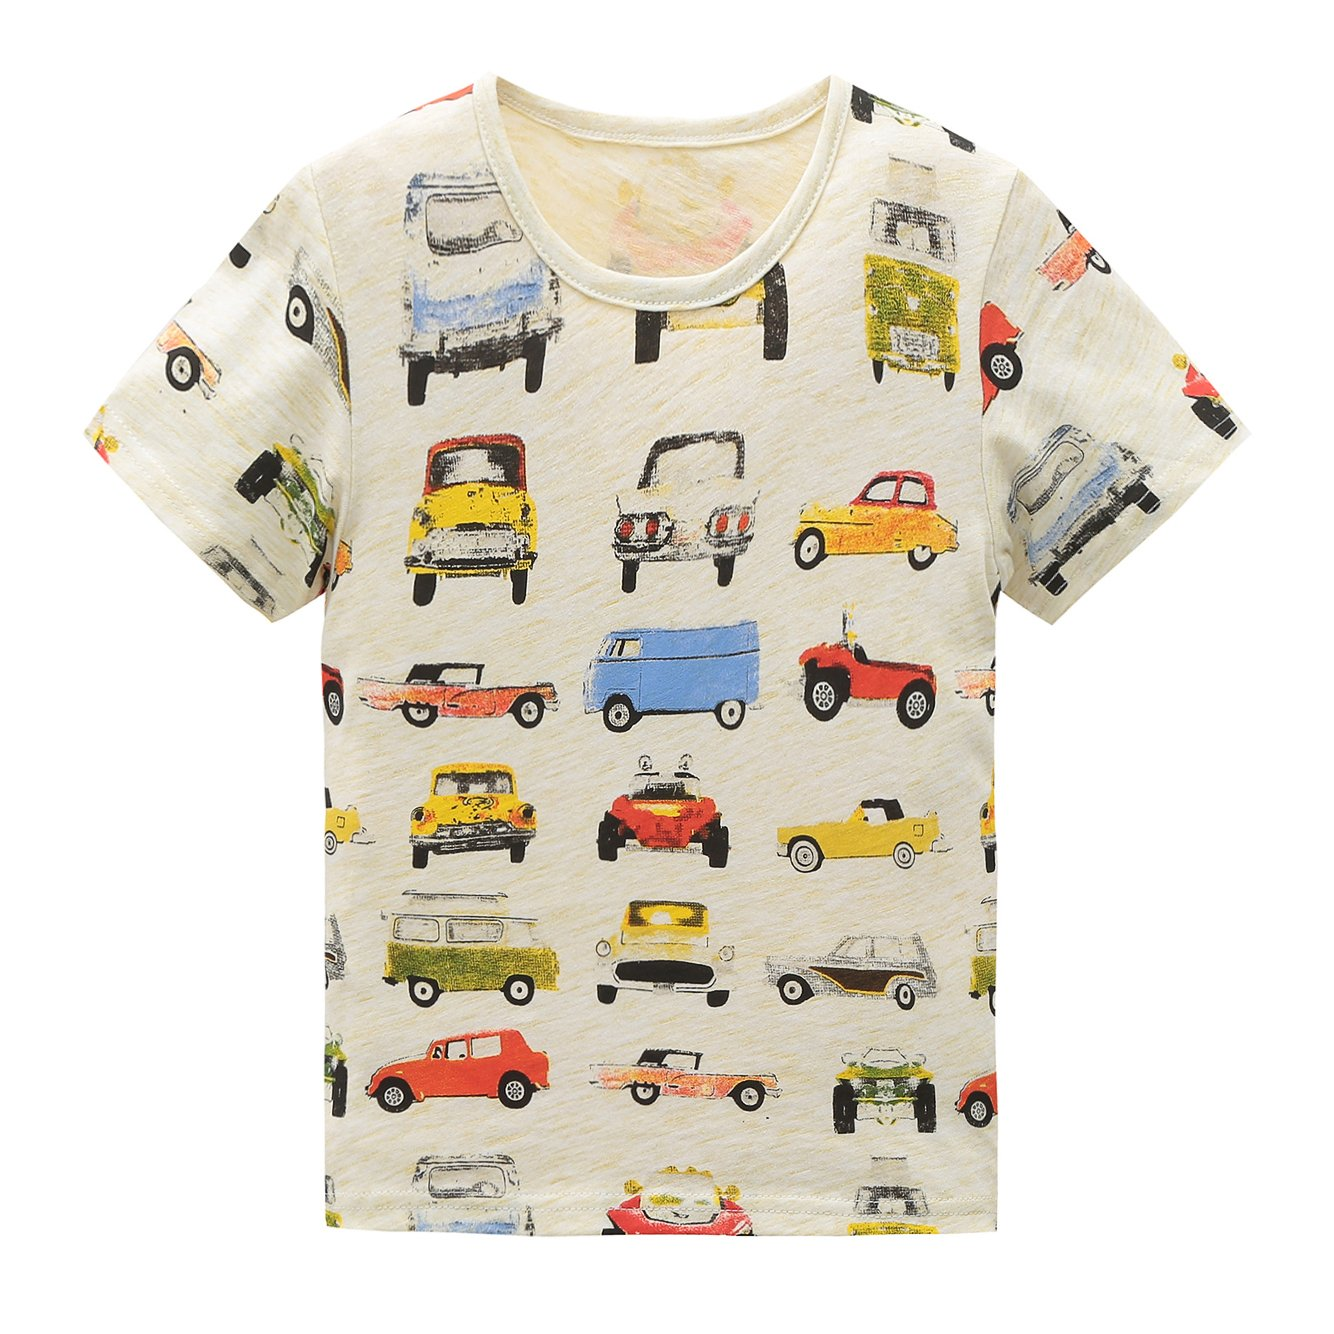 HowJoJo Boys Cotton Short Sleeve T-Shirts Summer Shirt Cars Graphic Tees Beige 4T